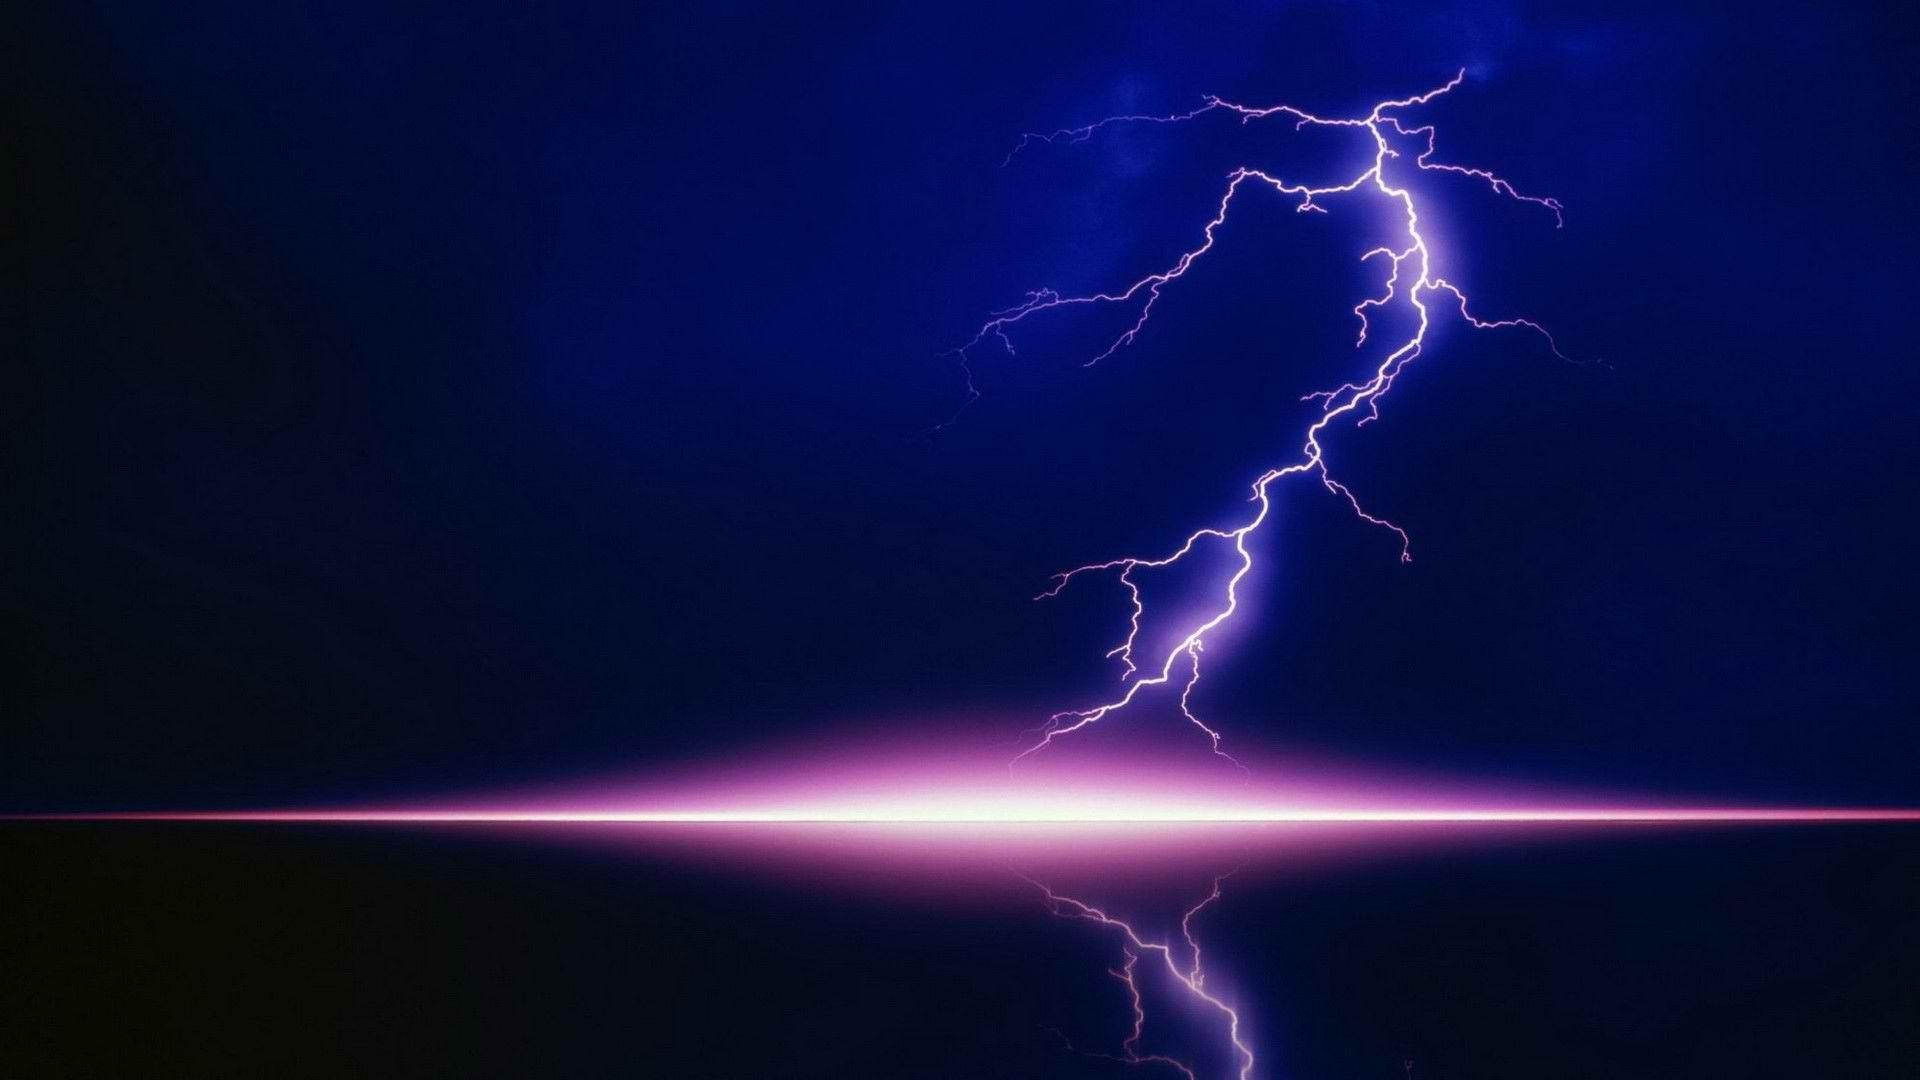 Lightning Wallpapers Top Free Lightning Backgrounds Wallpaperaccess